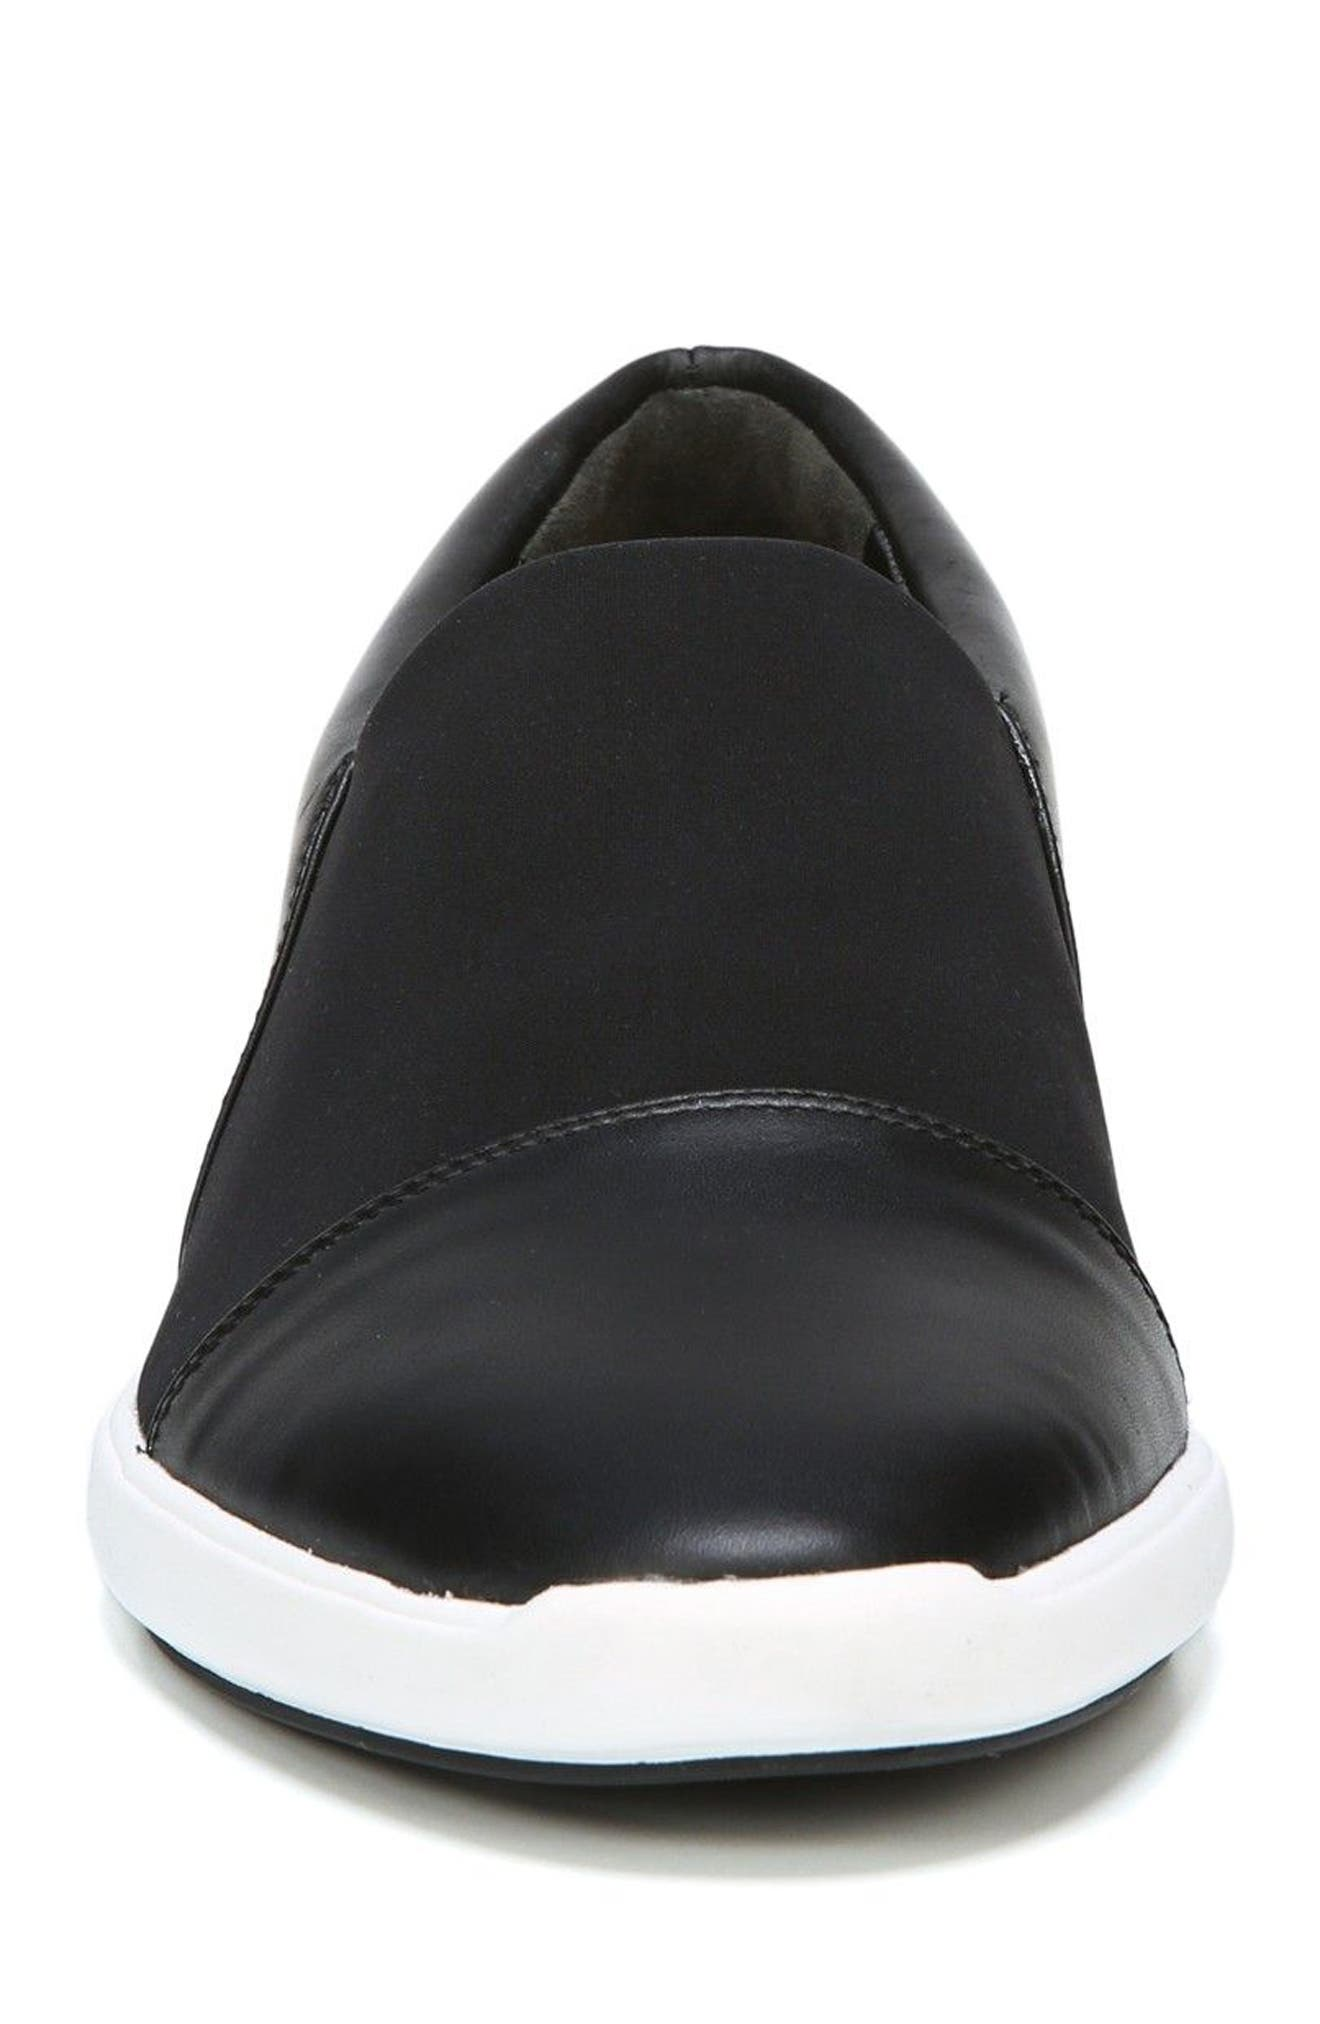 Morgan Slip-On Sneaker,                             Alternate thumbnail 4, color,                             001